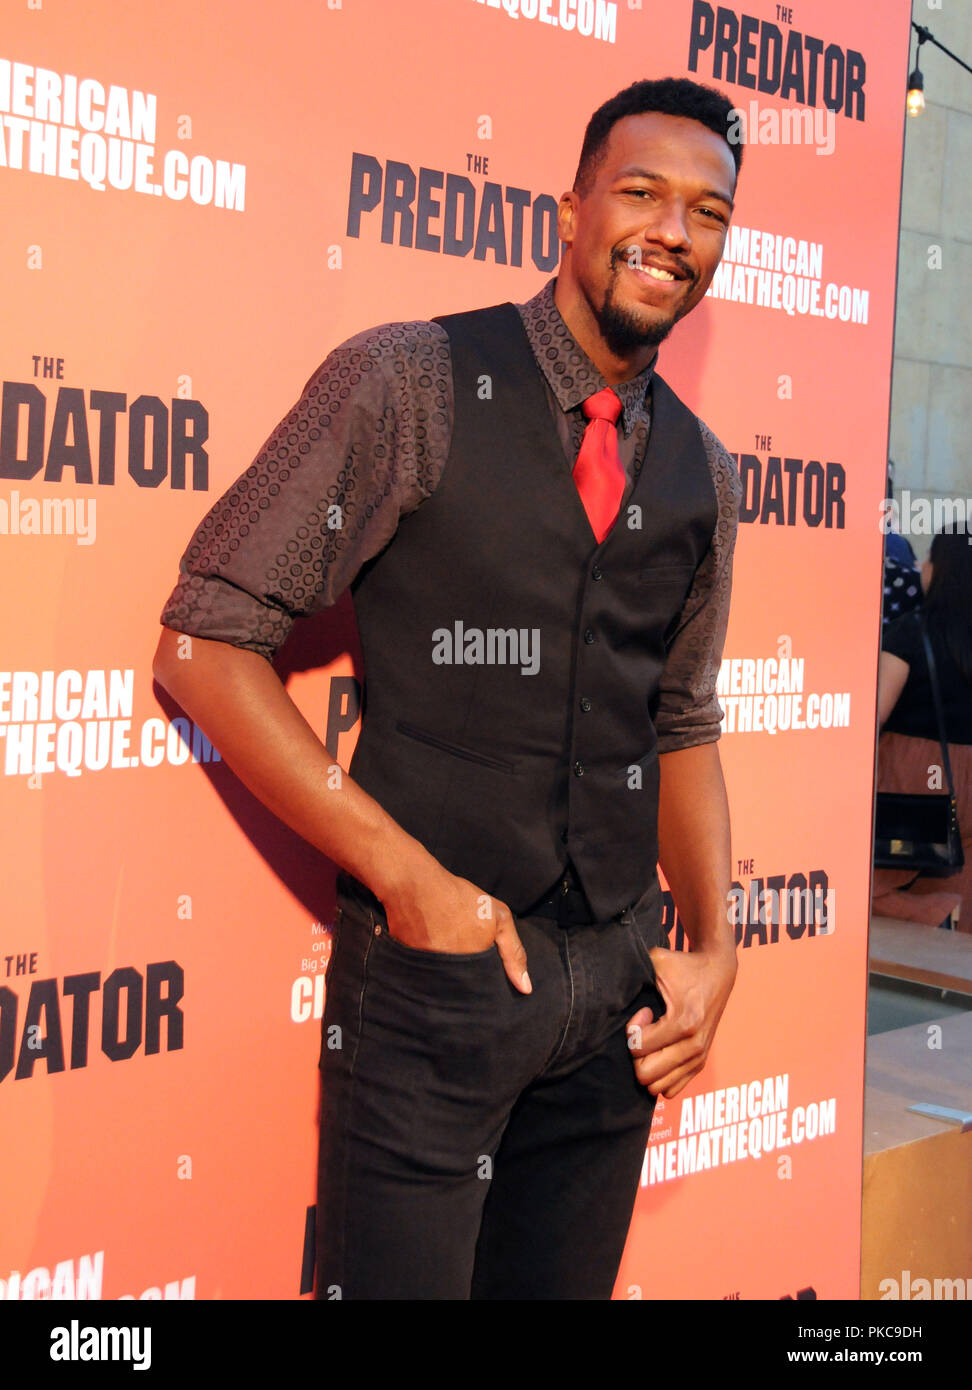 Hollywood, California, USA. 12th Sept 2018. Actor/stuntman Brian A. Prince attends 20th Century Fox's 'The Predator' Special Screening Event on September 12, 2018 at The Egyptian Theatre in Hollywood, California. Photo by Barry King/Alamy Live News - Stock Image